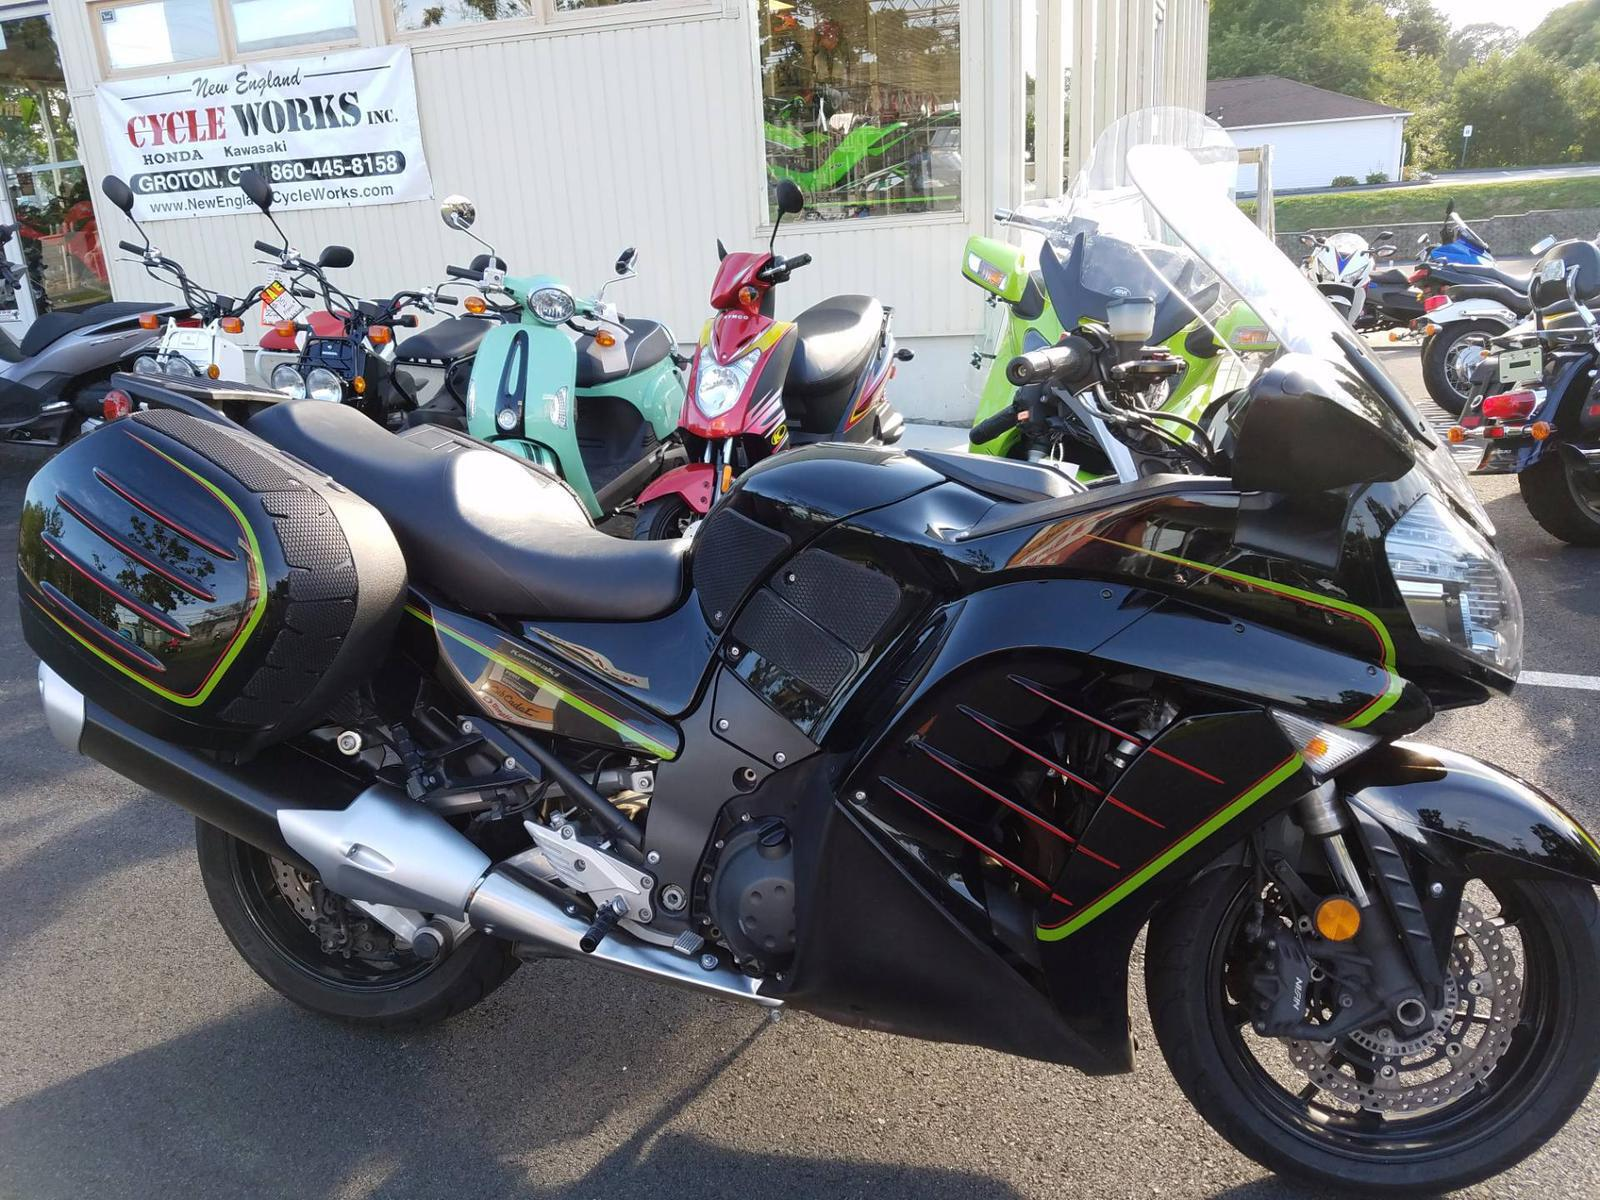 2012 kawasaki concours 14 abs for sale in groton, ct | new england